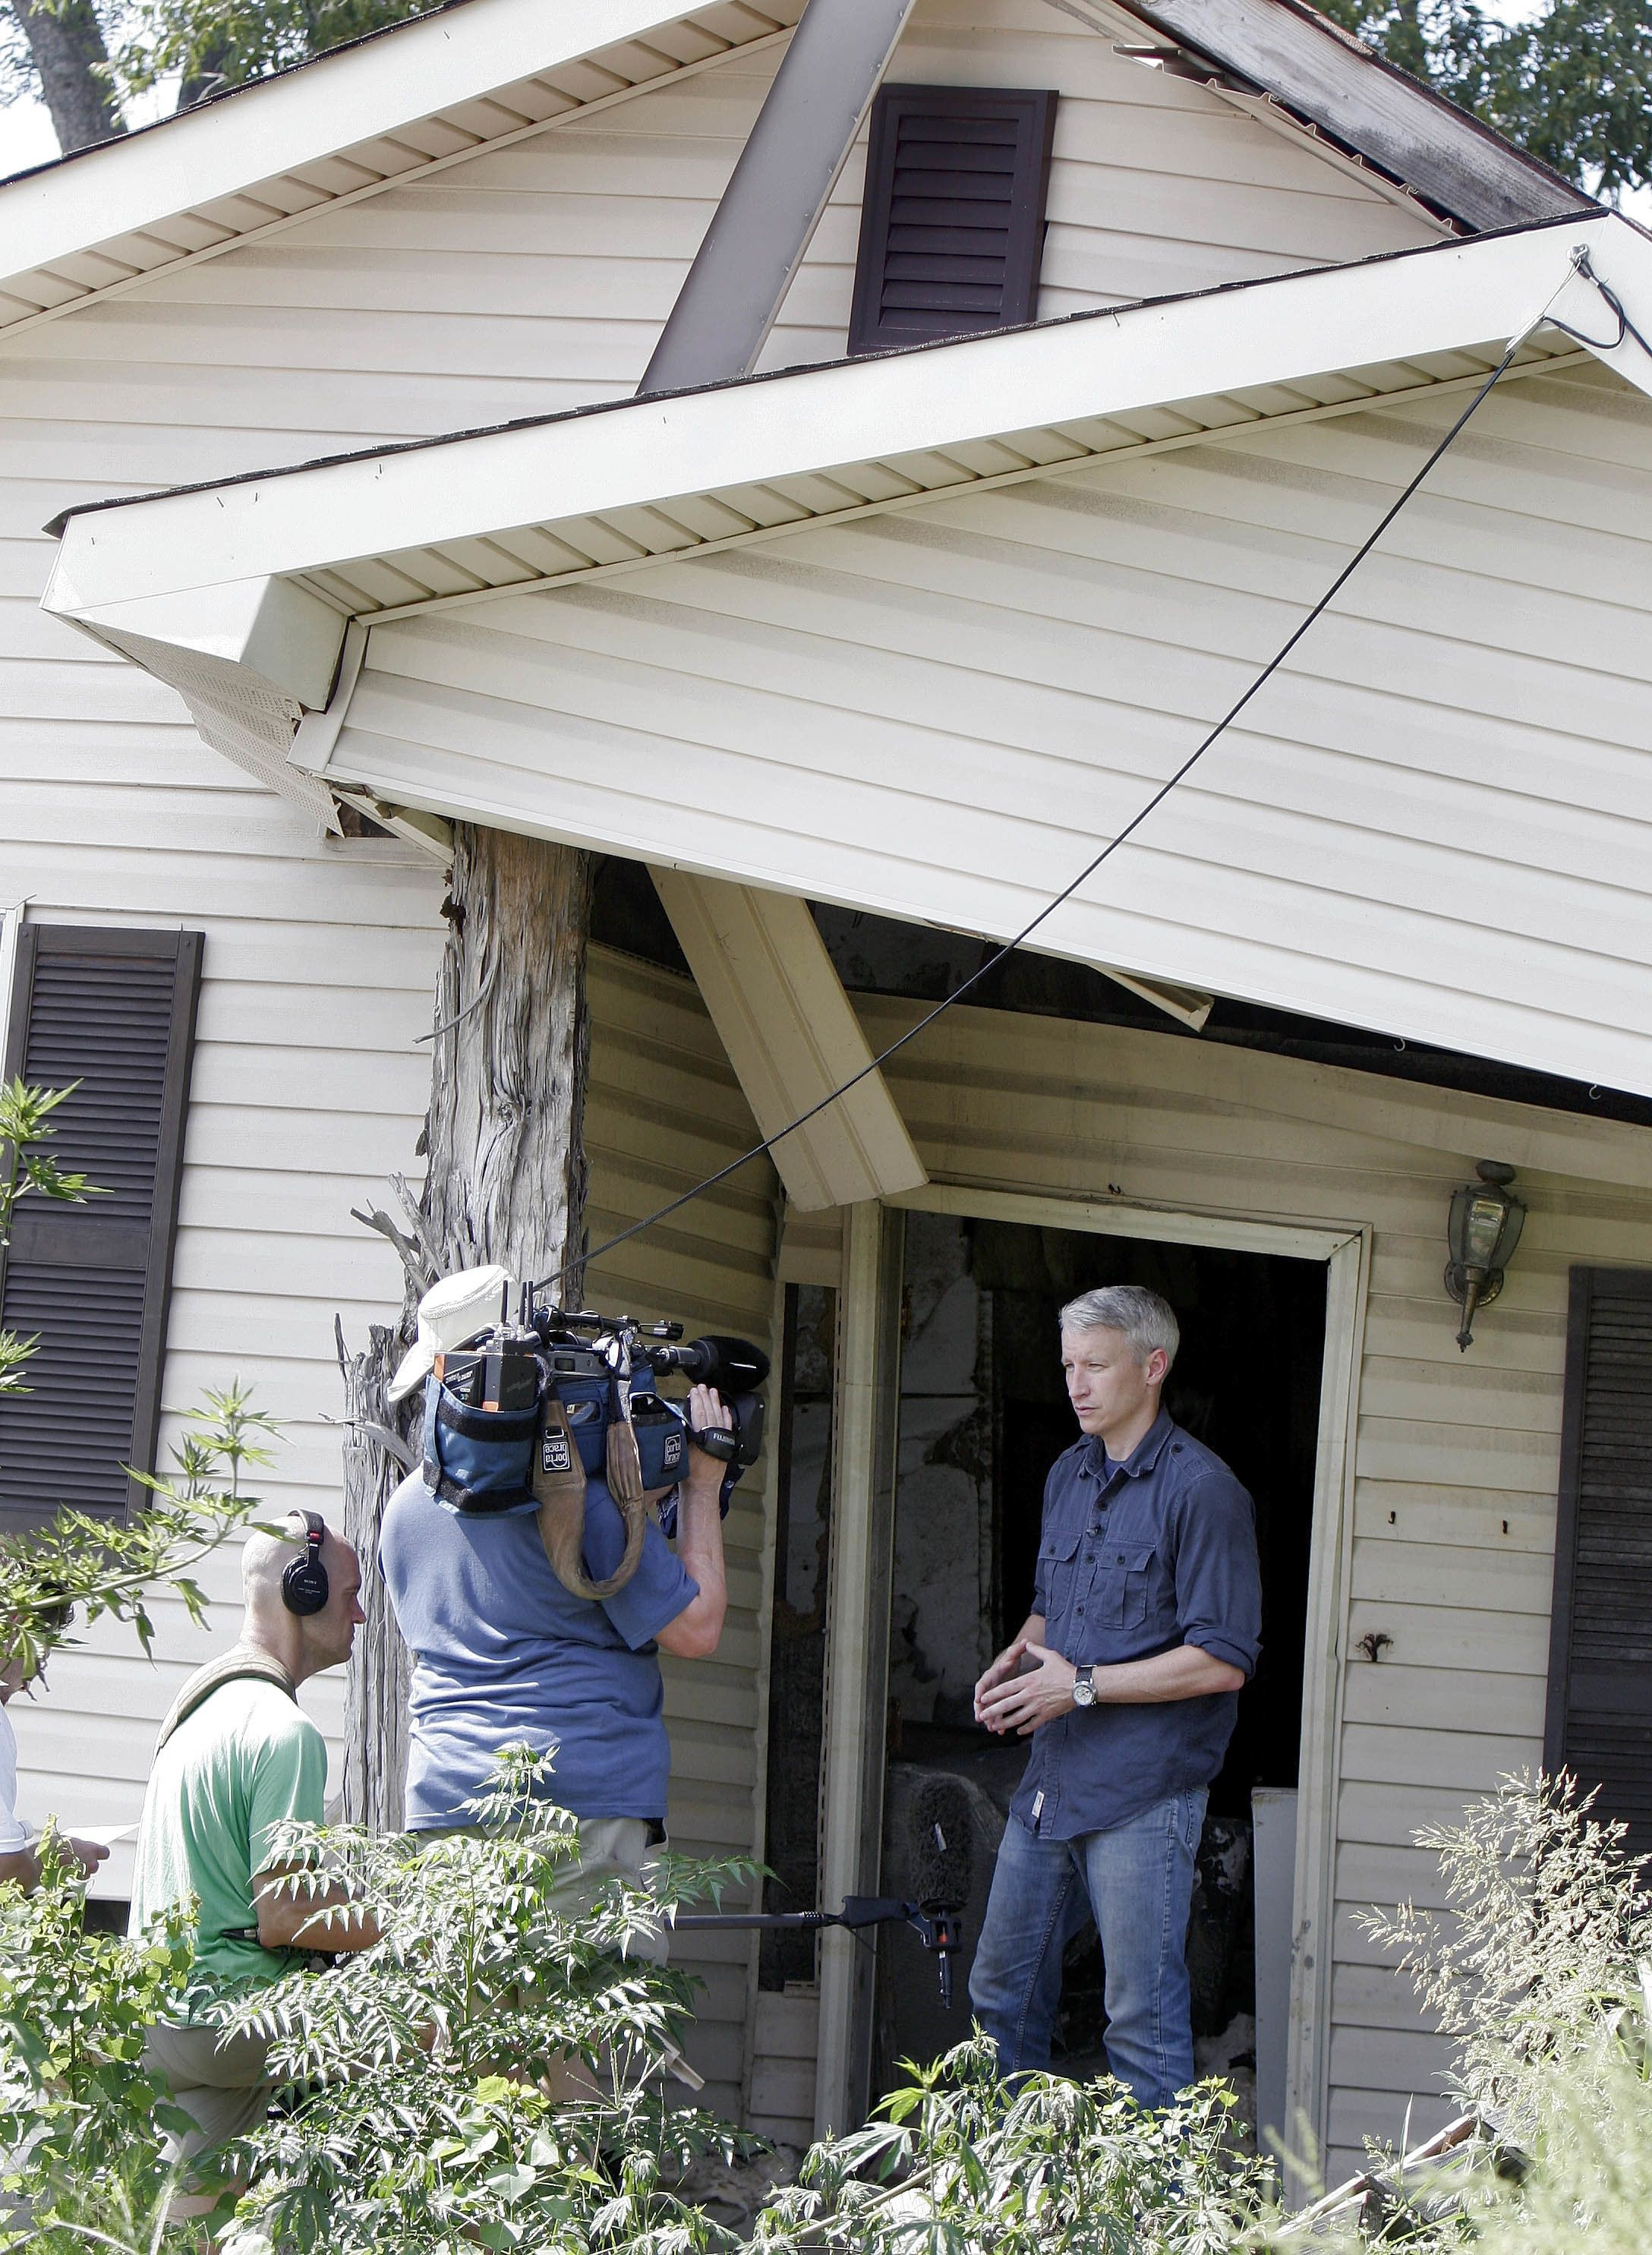 CNN's Anderson Cooper does some taping in the doorway of a house in the Lower Ninth Ward that was damaged by Hurricane Katrina nearly one year ago in New Orleans on Monday, Aug. 28, 2006. The national and international media have come to the region for the anniversary of Hurricane Katrina, however Cooper has returned to the region repeatedly.(AP Photo/Alex Brandon)